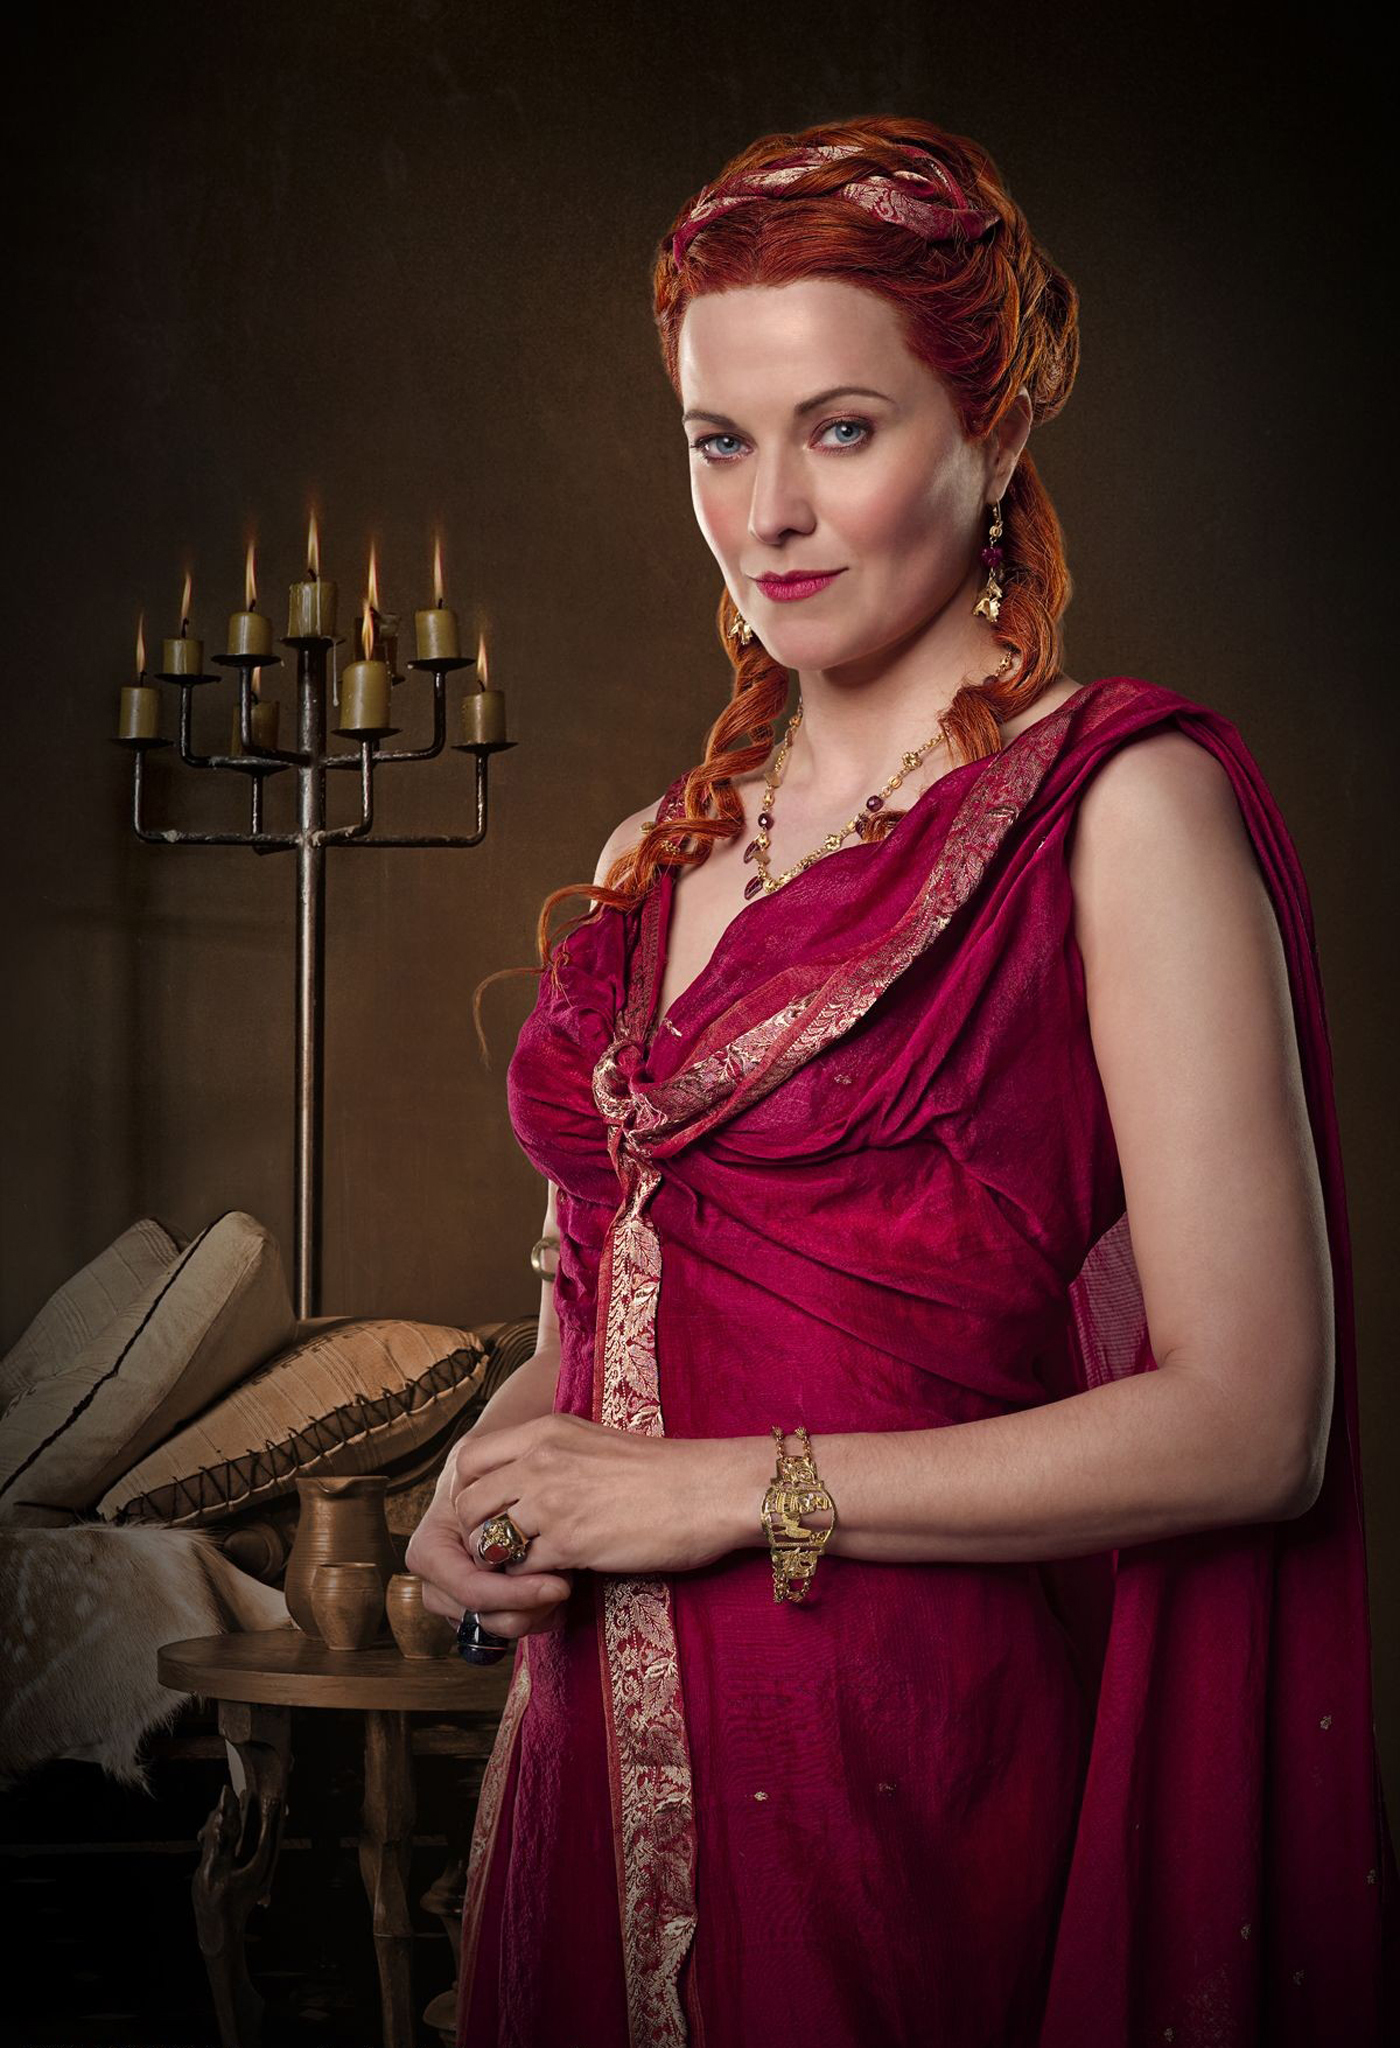 Lucretia - Spartacus: Blood & Sand Photo (16799780) - Fanpop